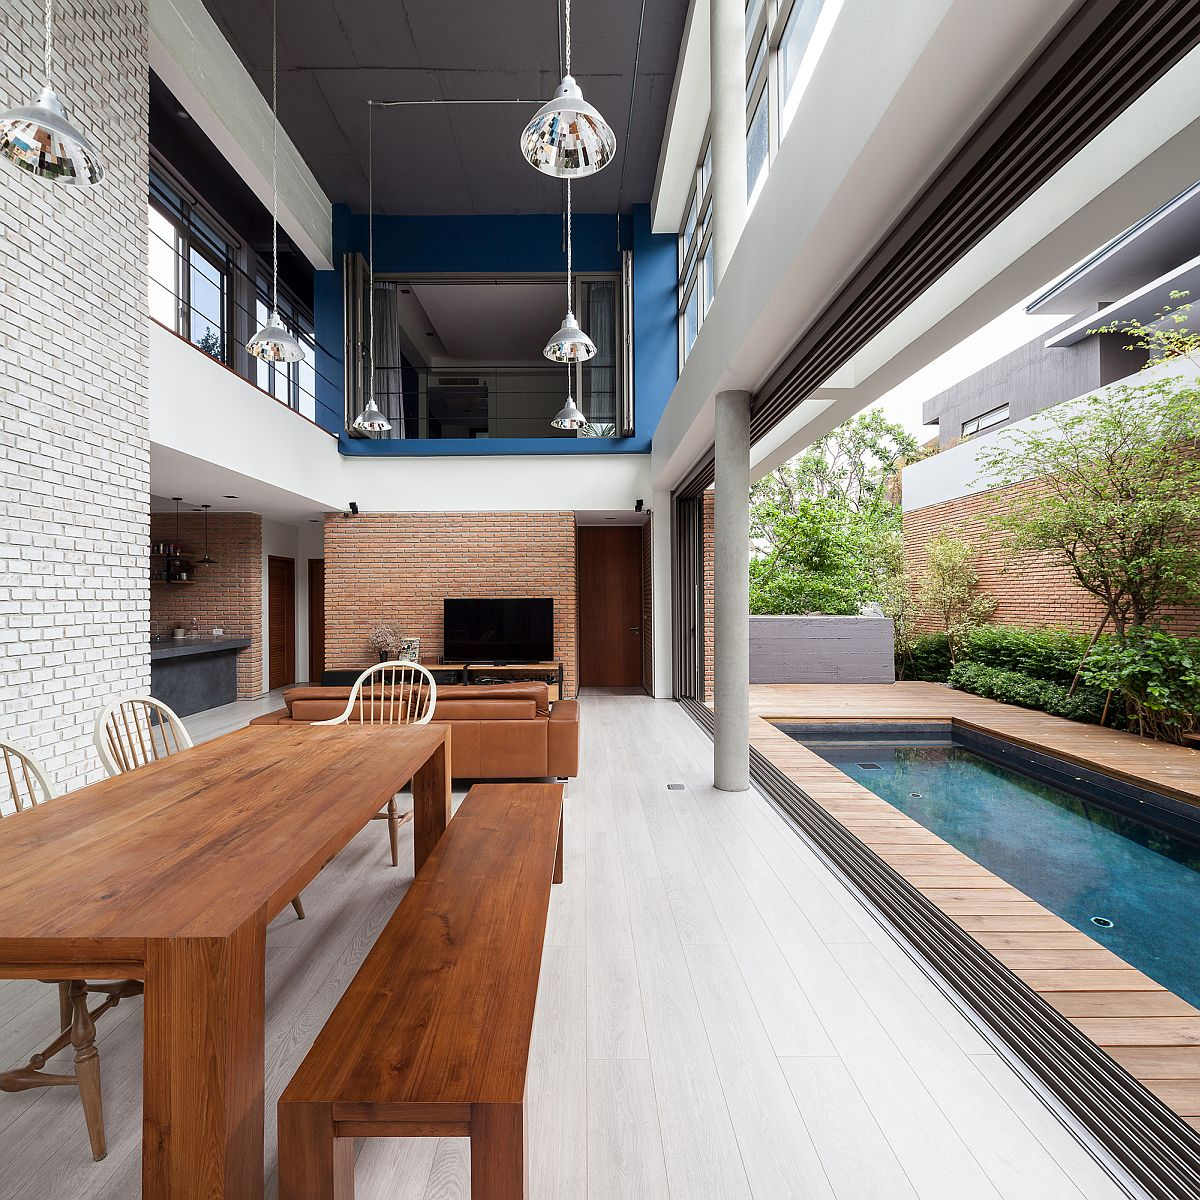 Remarkable House Design Living Space Concepts: Industrial And Modern Side By Side: Two Houses In Bangkok